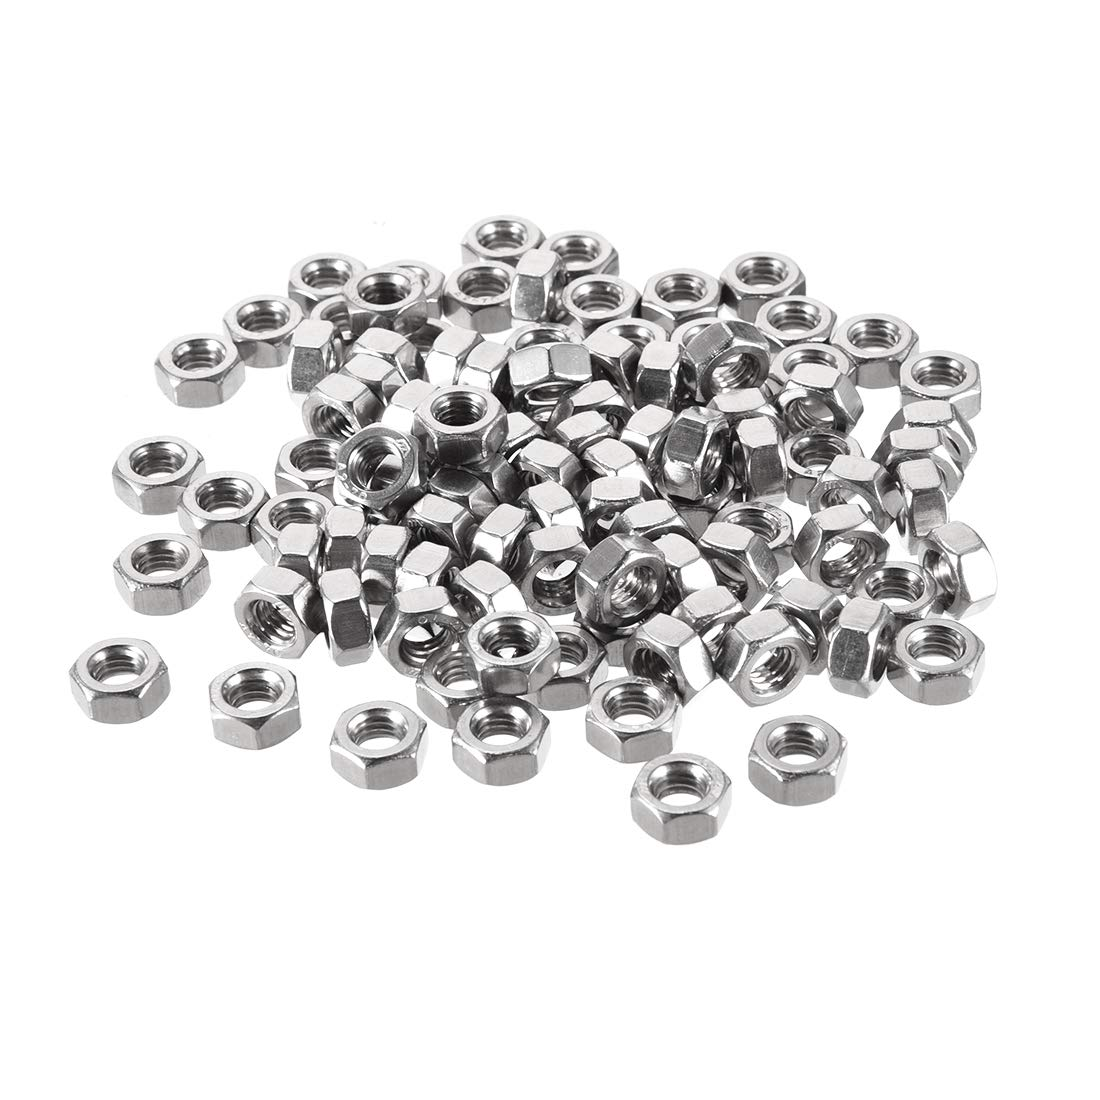 uxcell Metric M3x0.5mm Stainless Steel Finished Hex Nut Silver Tone 50pcs